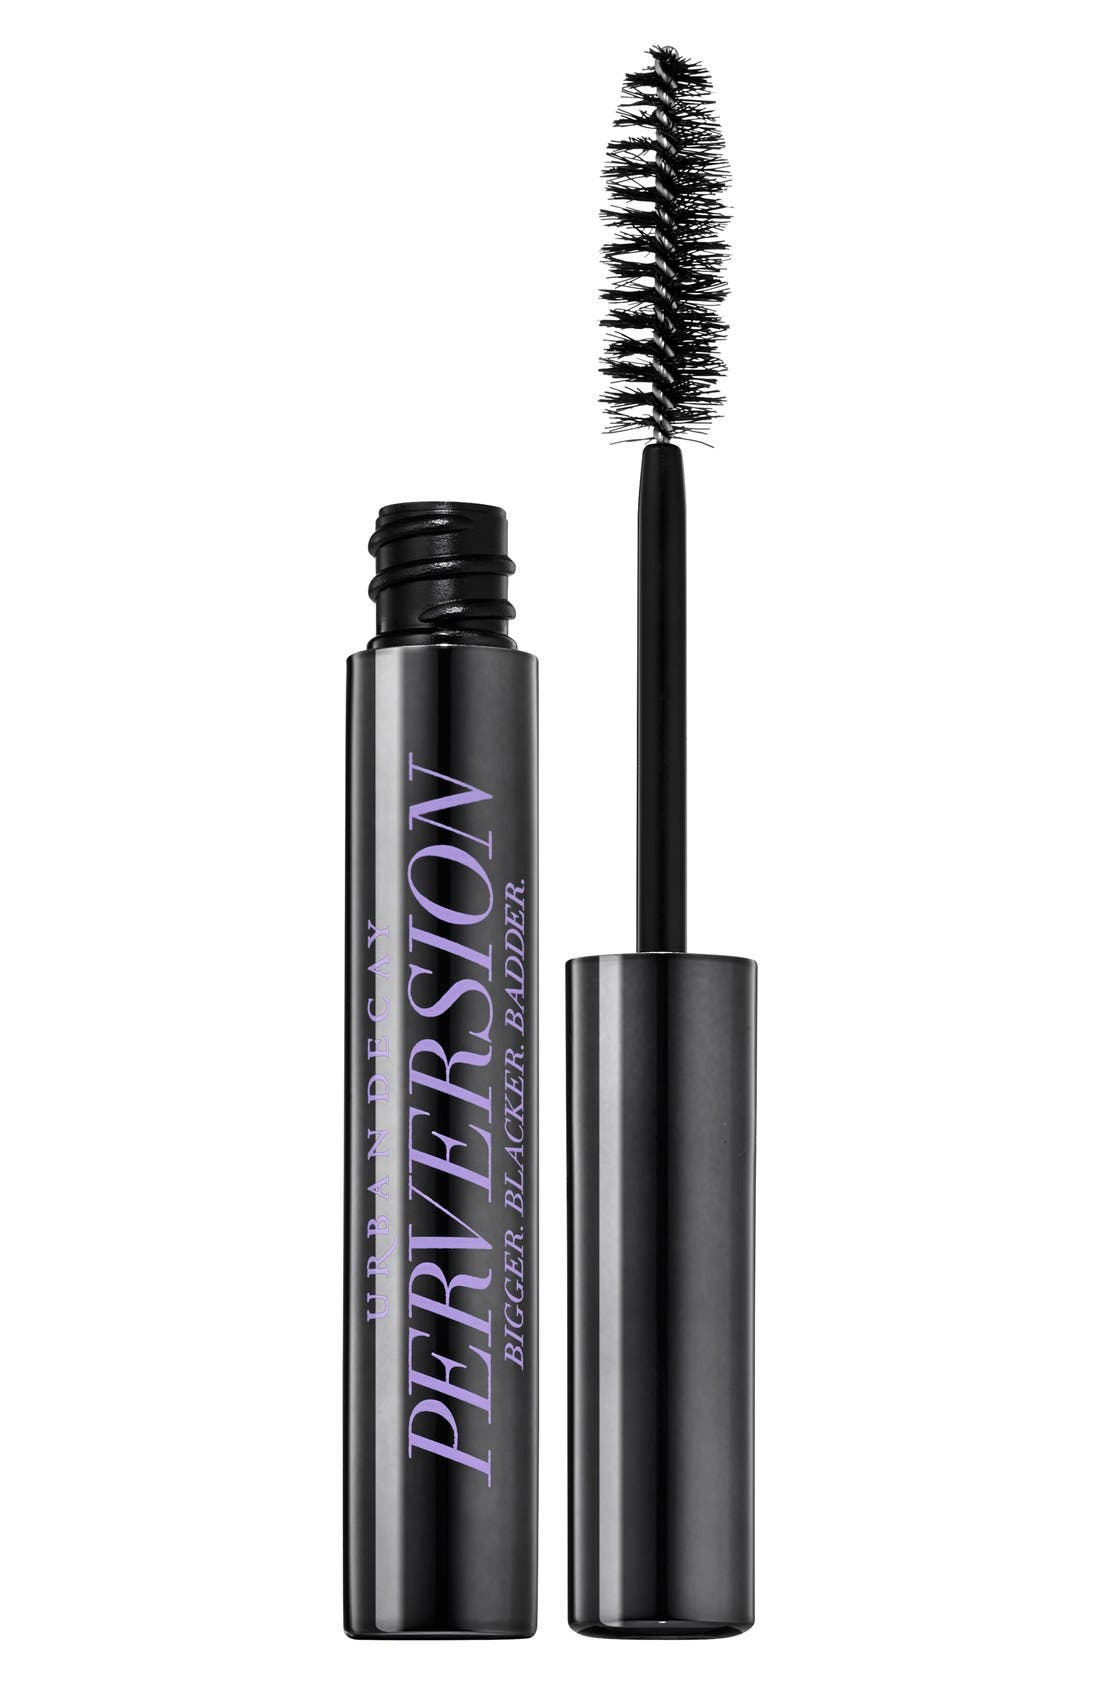 Urban Decay 'Perversion' Mascara (Travel Size)